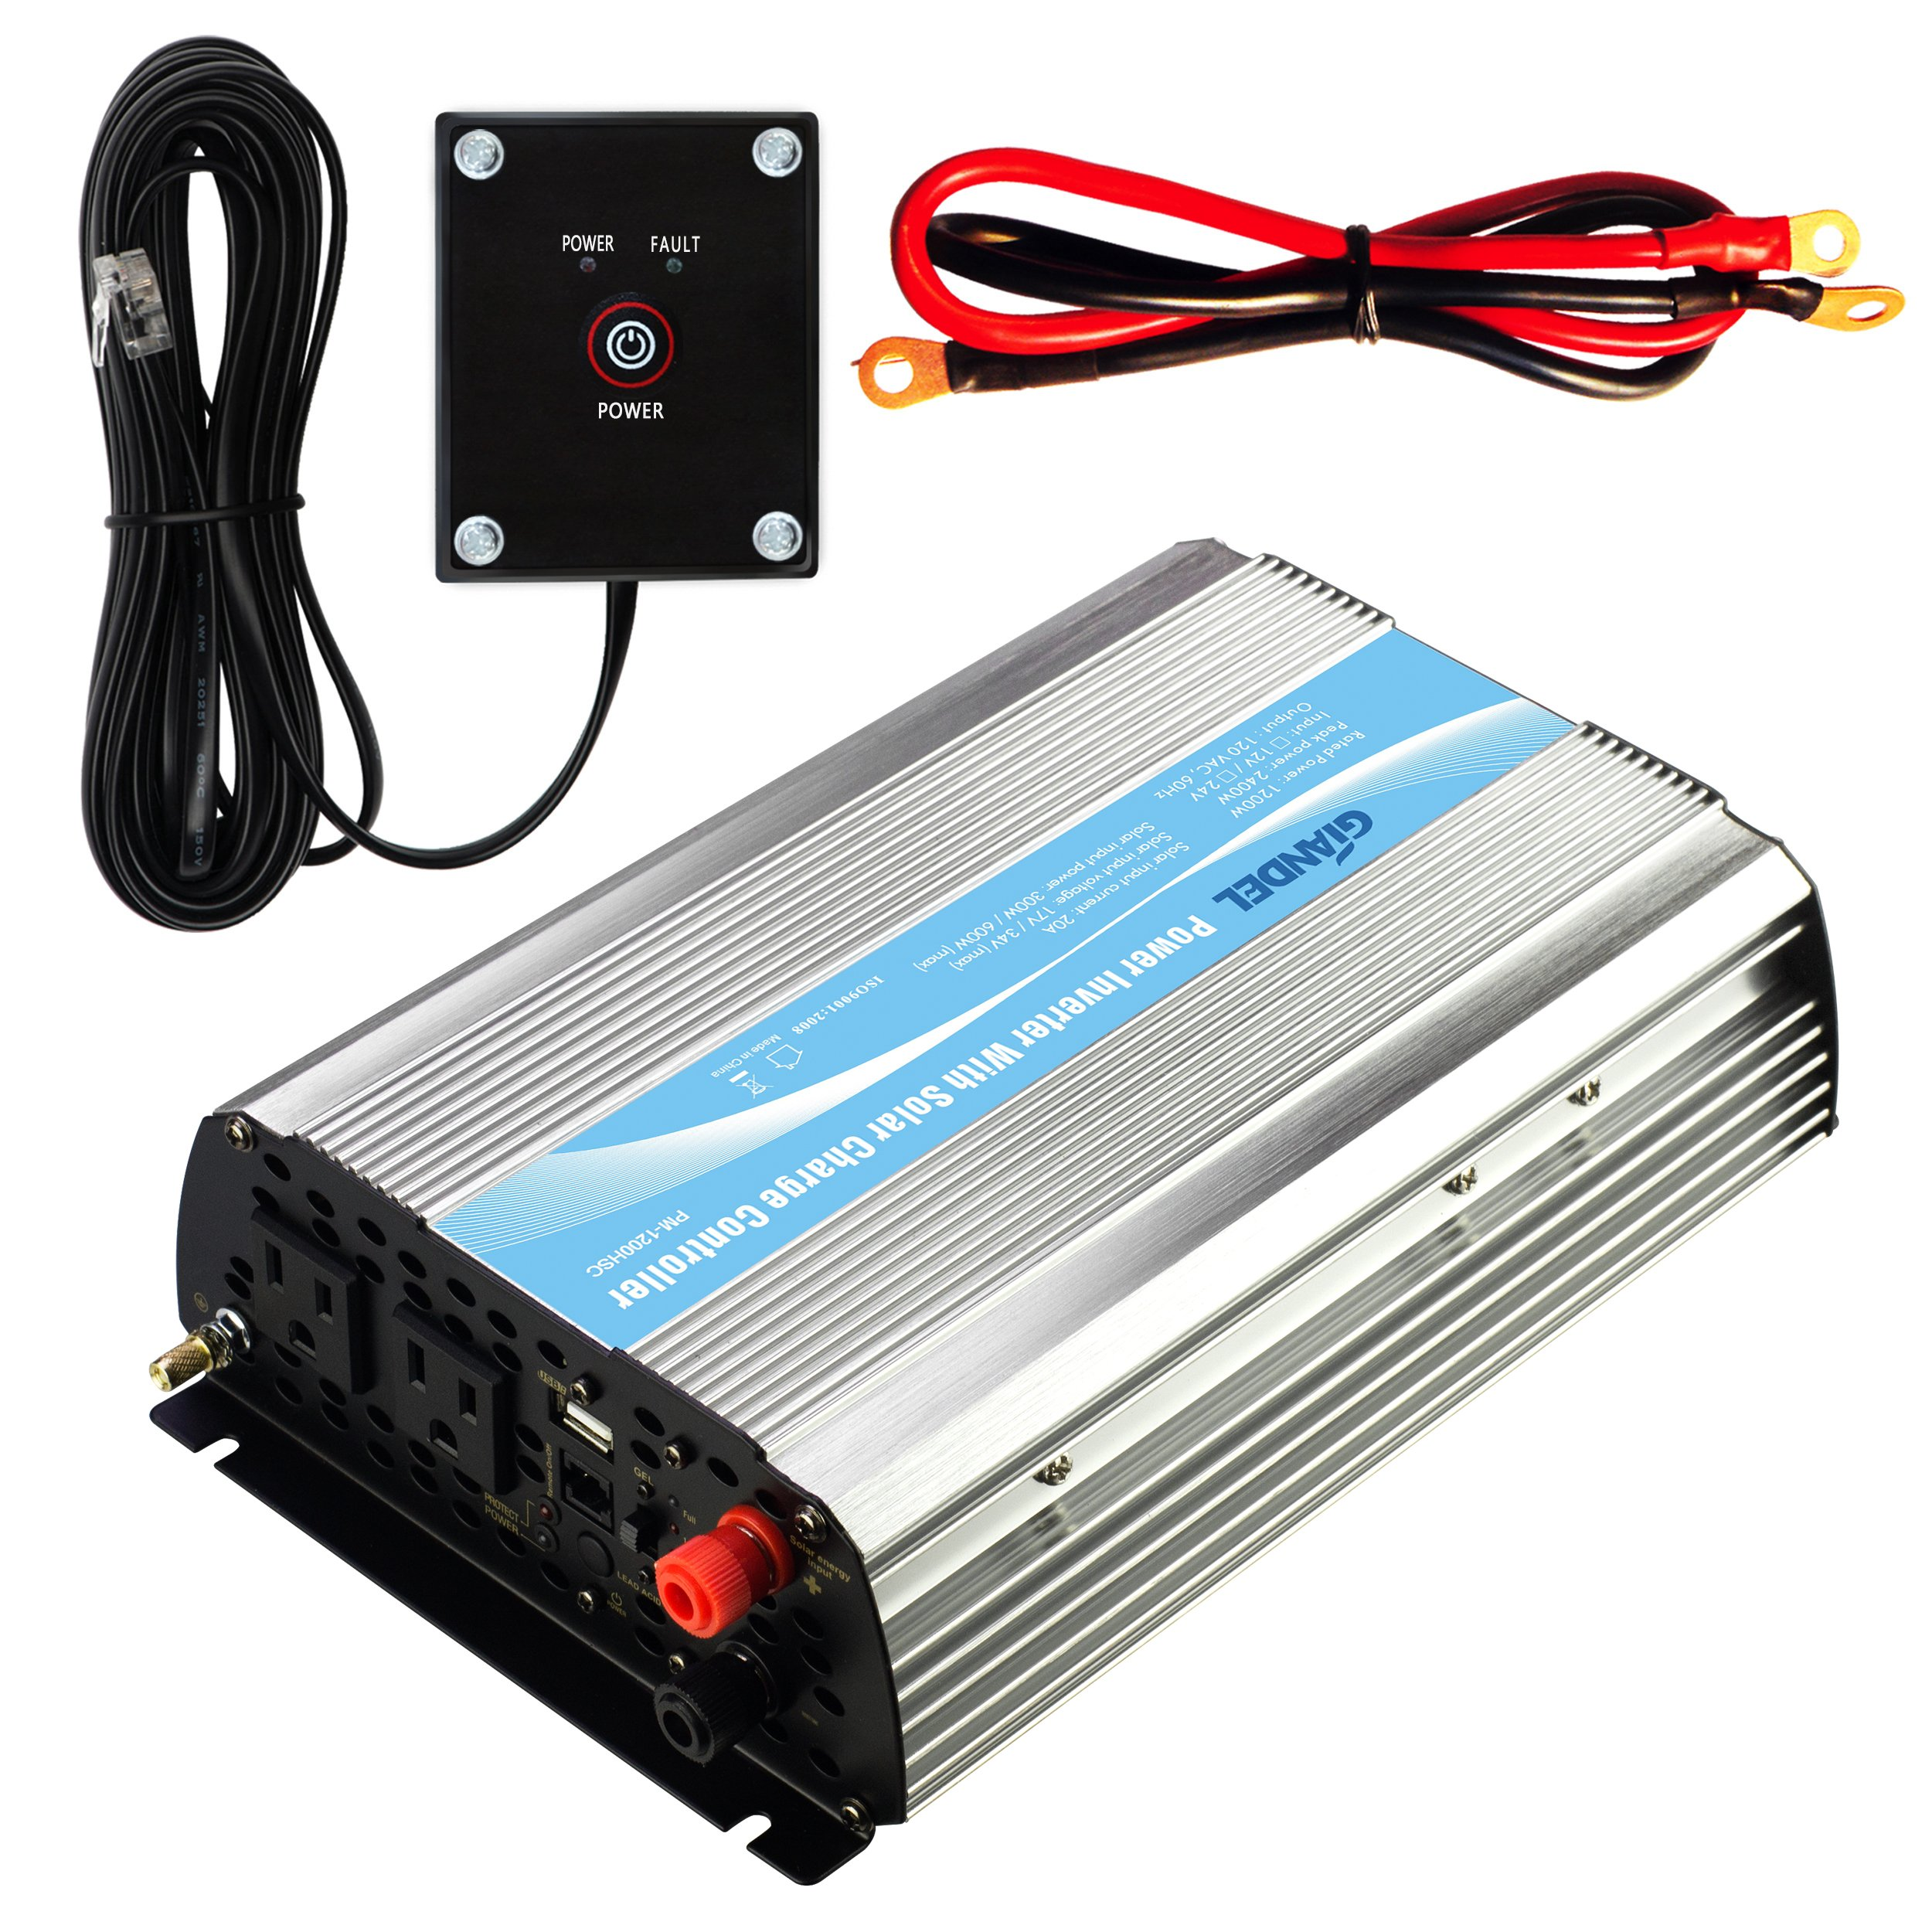 Giandel 1000Watt Power Inverter 12V DC to 110V 120V AC 20A Solar Charge Controller Remote Controller Dual AC Outlets & 2.4A USB Port Big Shell by GIANDEL